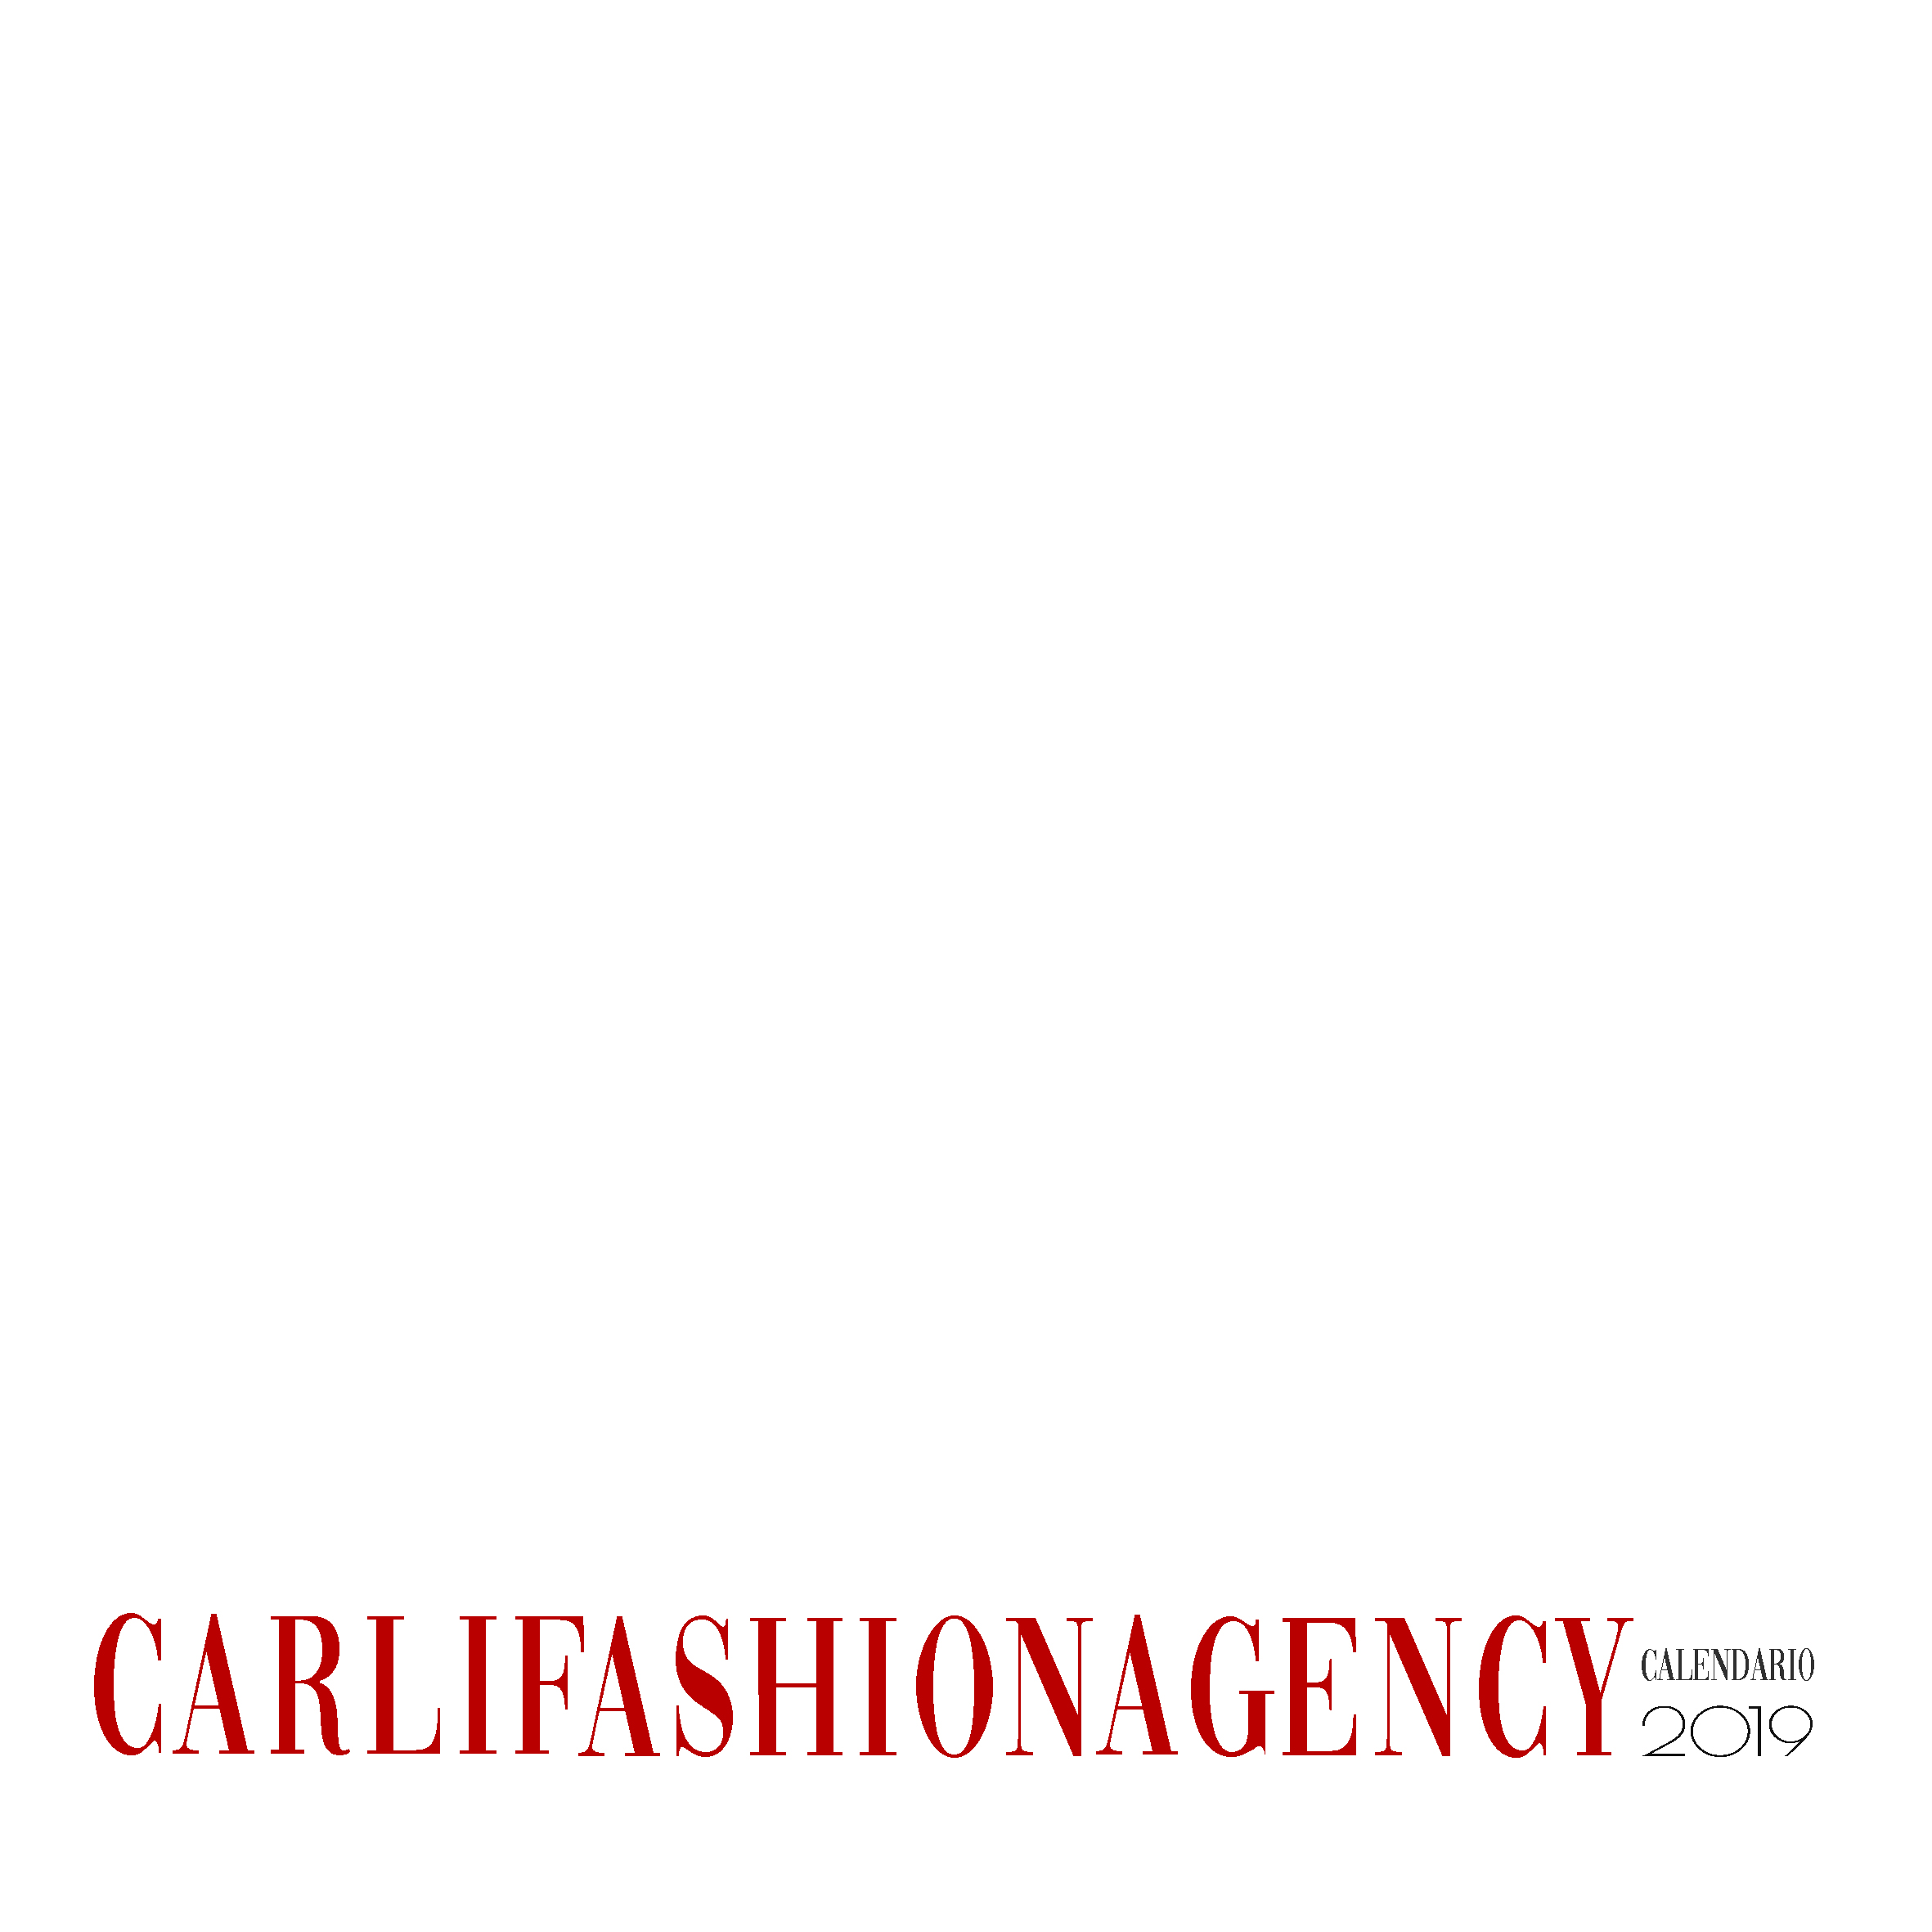 Calendario 2019 Carlifashion